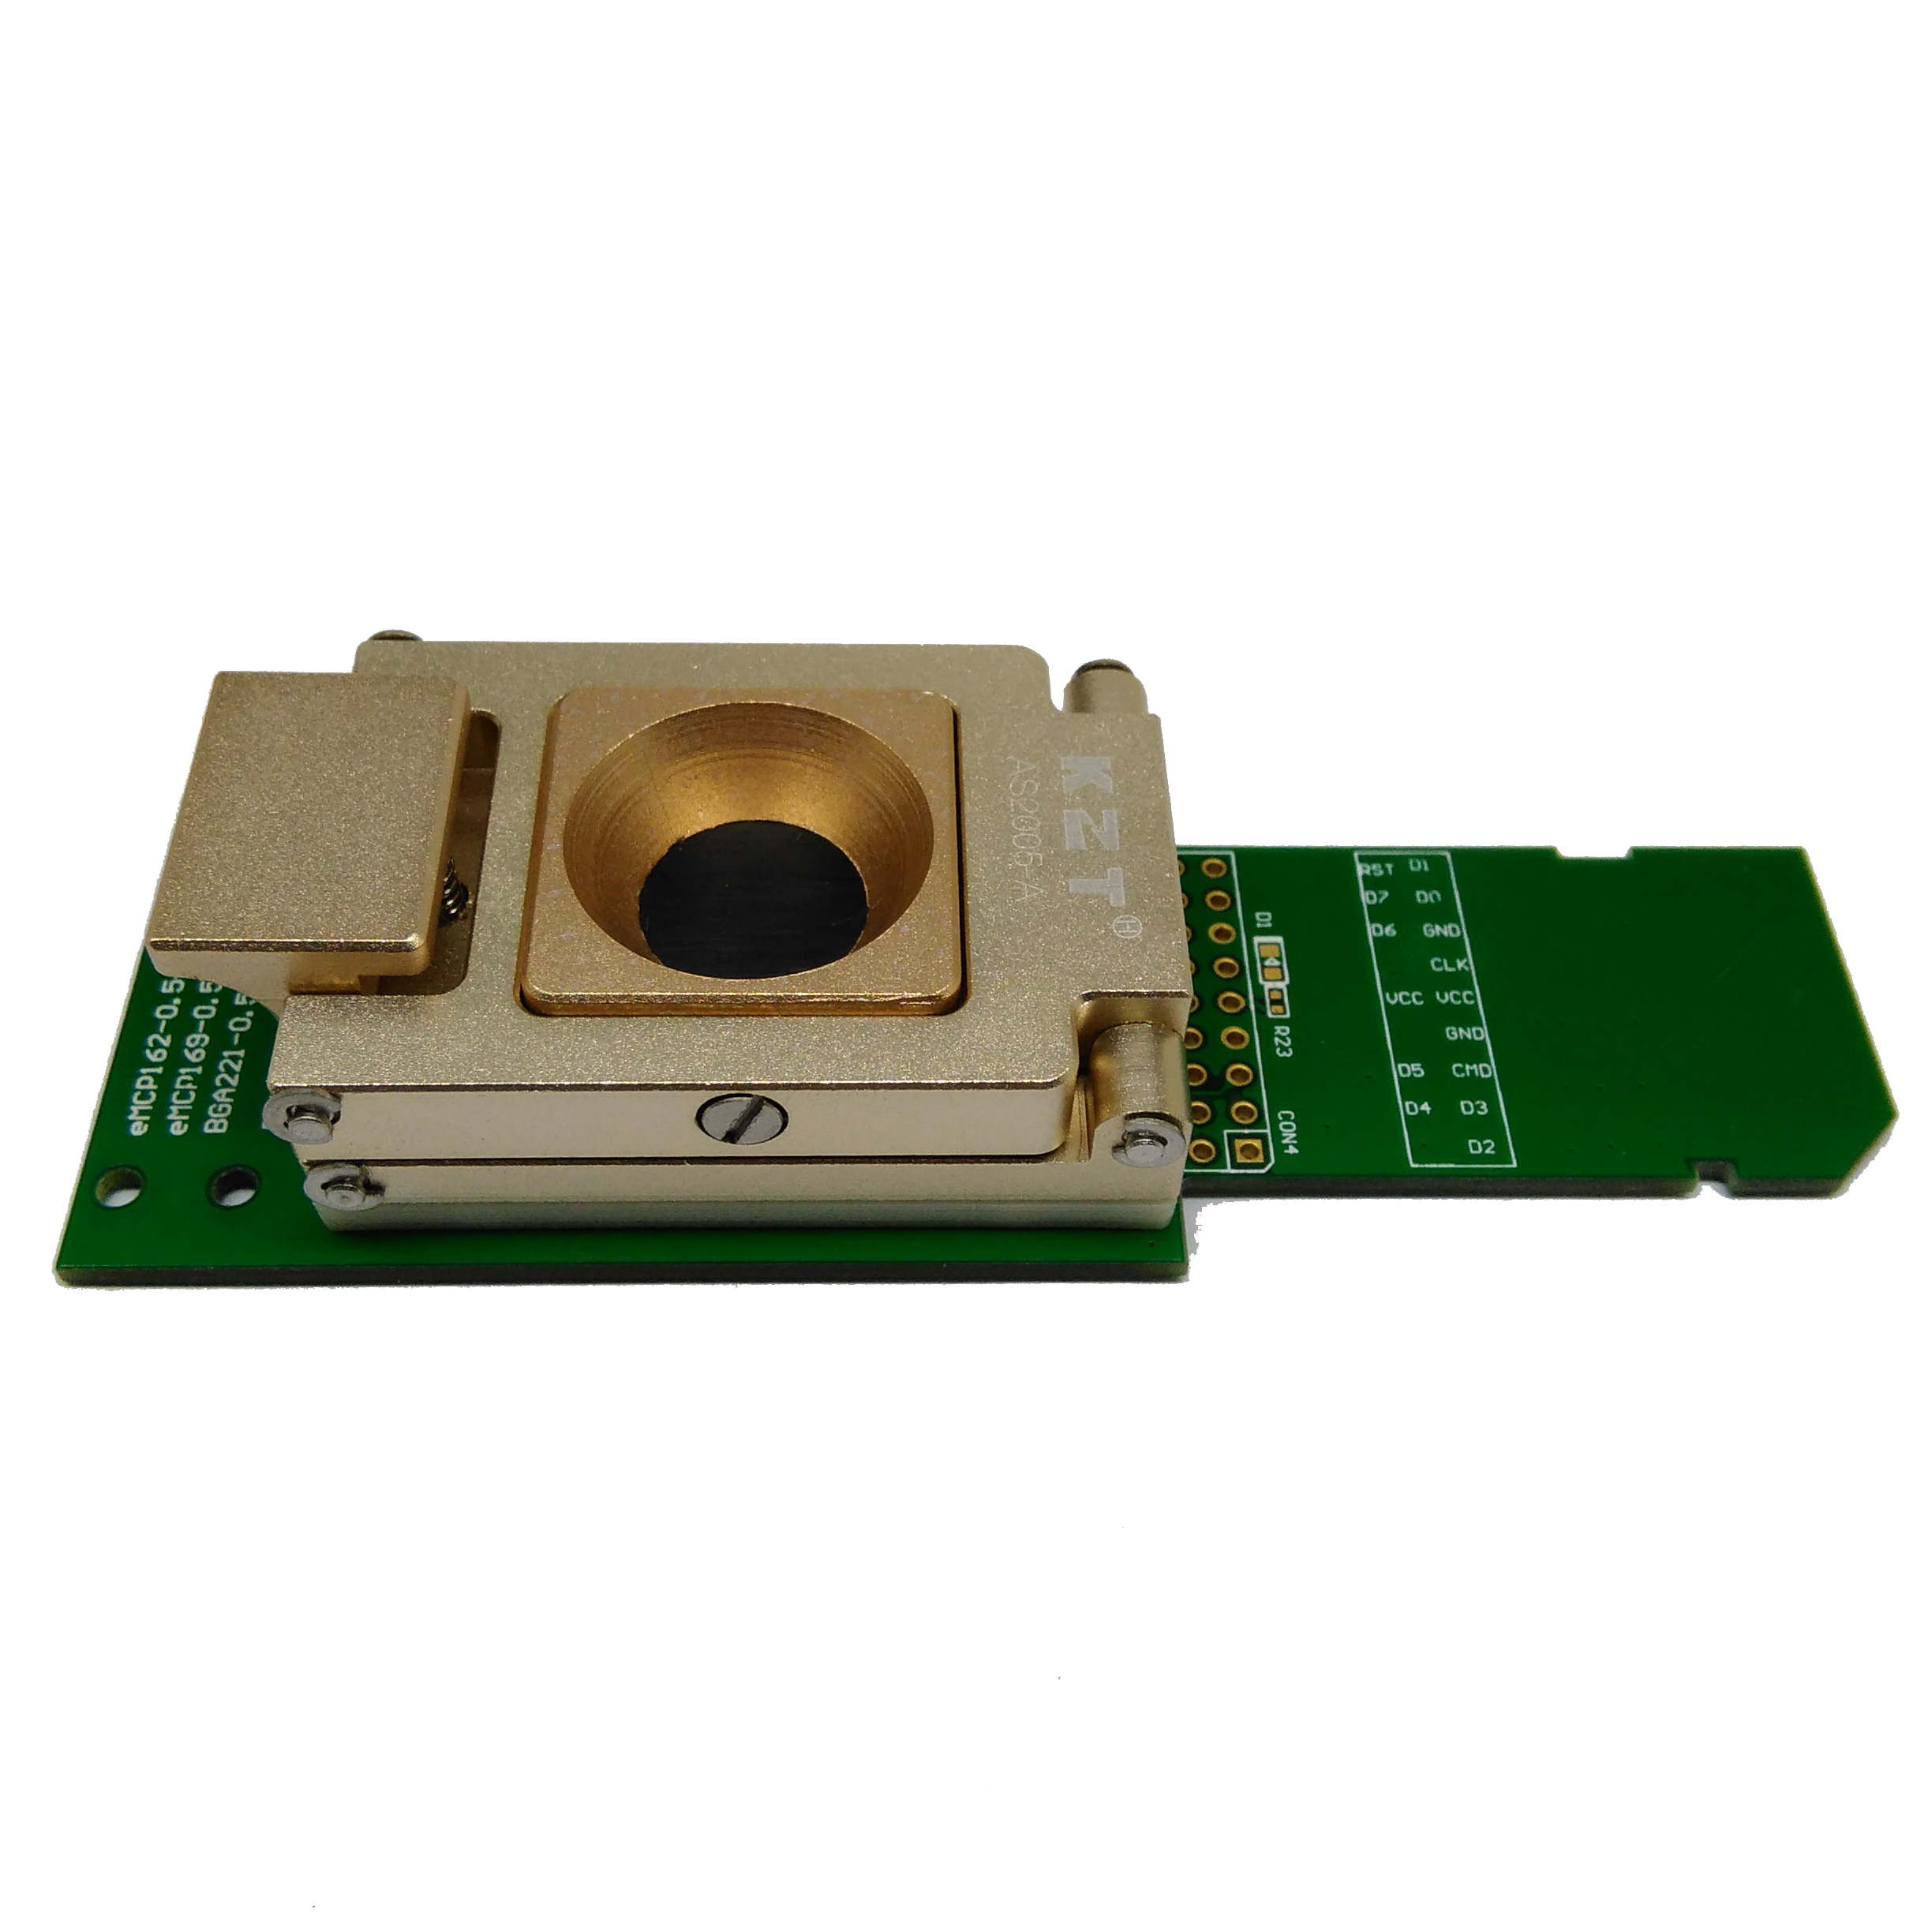 eMCP221 Test Socket with SD interface Pogo Pin Nand flash reader For BGA 221,Apply to eMCP size 11.5x13mm Pitch 0.5mm Adapter